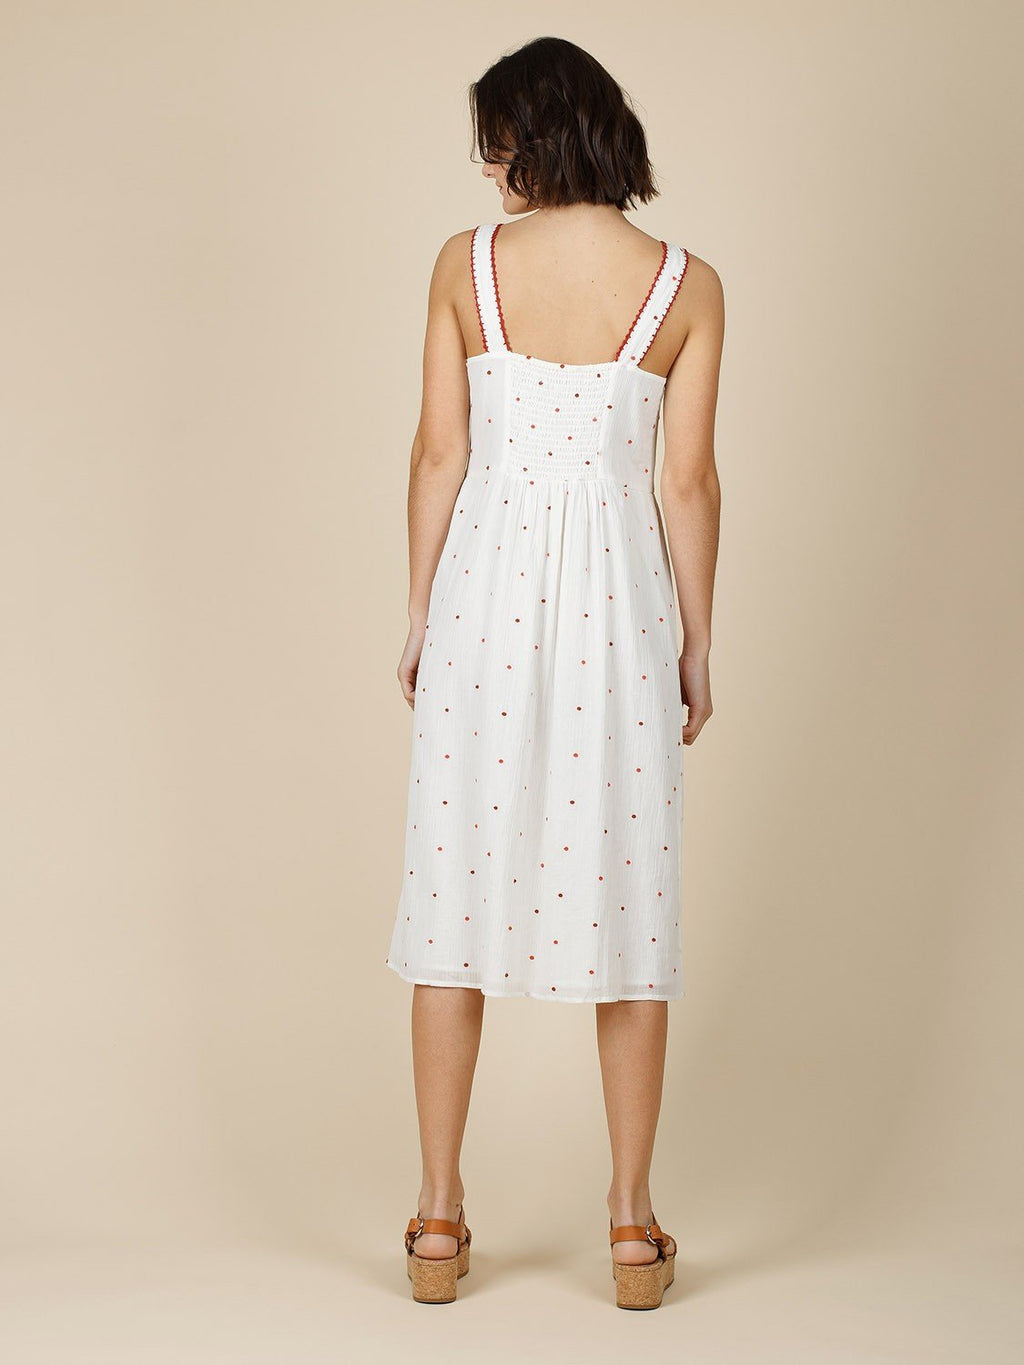 Indi & Cold embroidered white cotton Summer dress